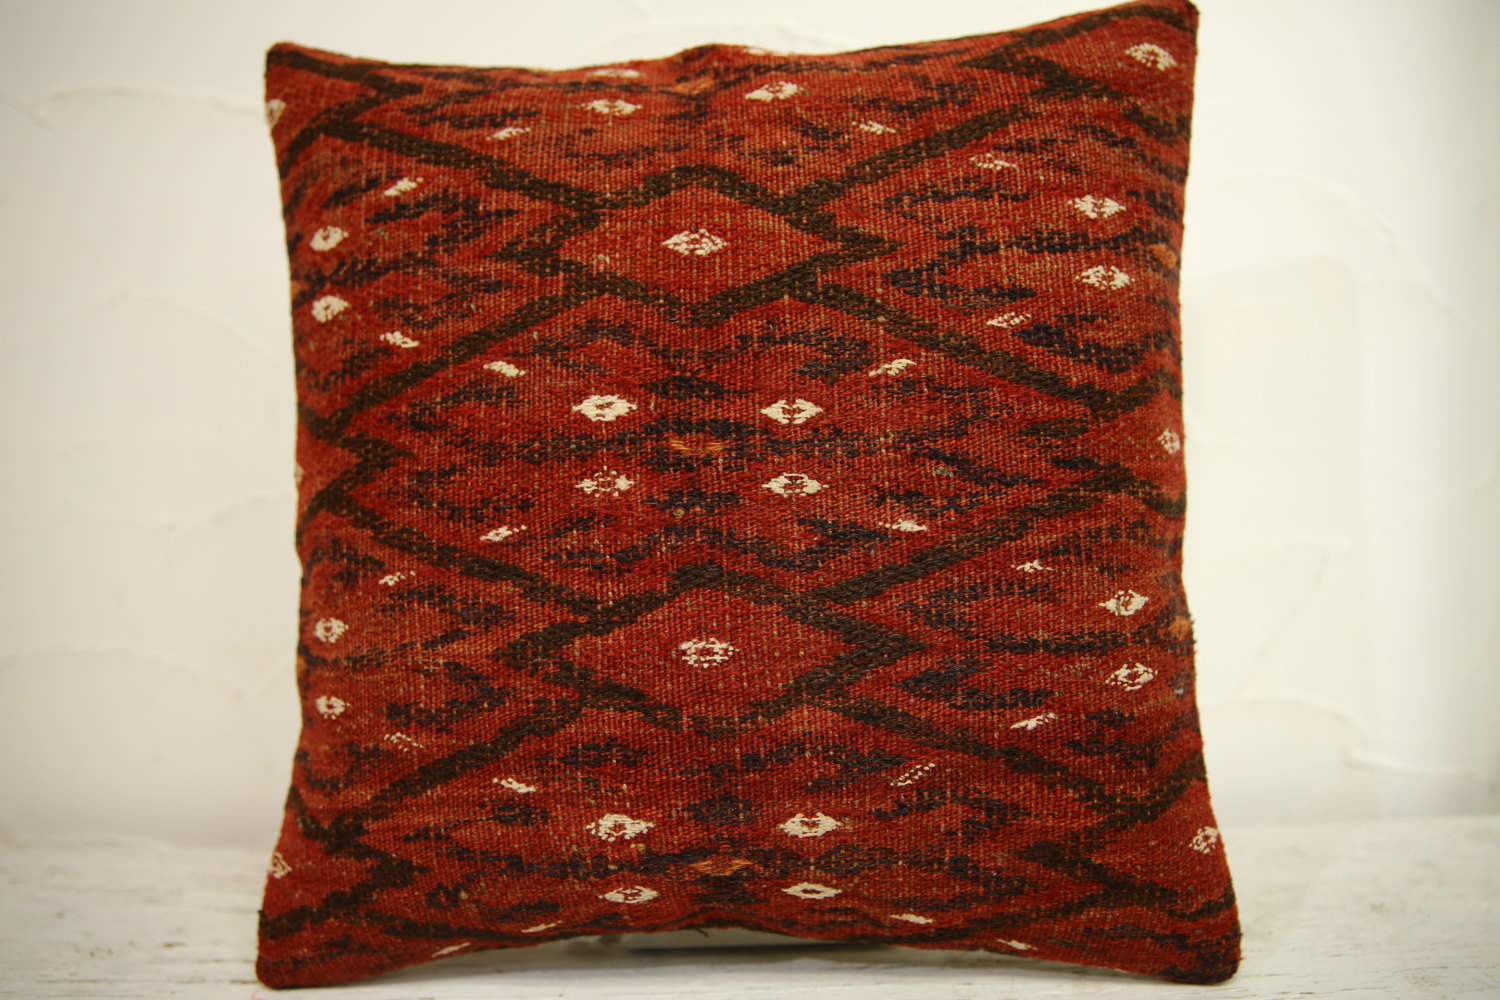 Kilim Pillows | 16x16 | Turkish pillows | 1205 | Accent Pillow,Decorative Pillow